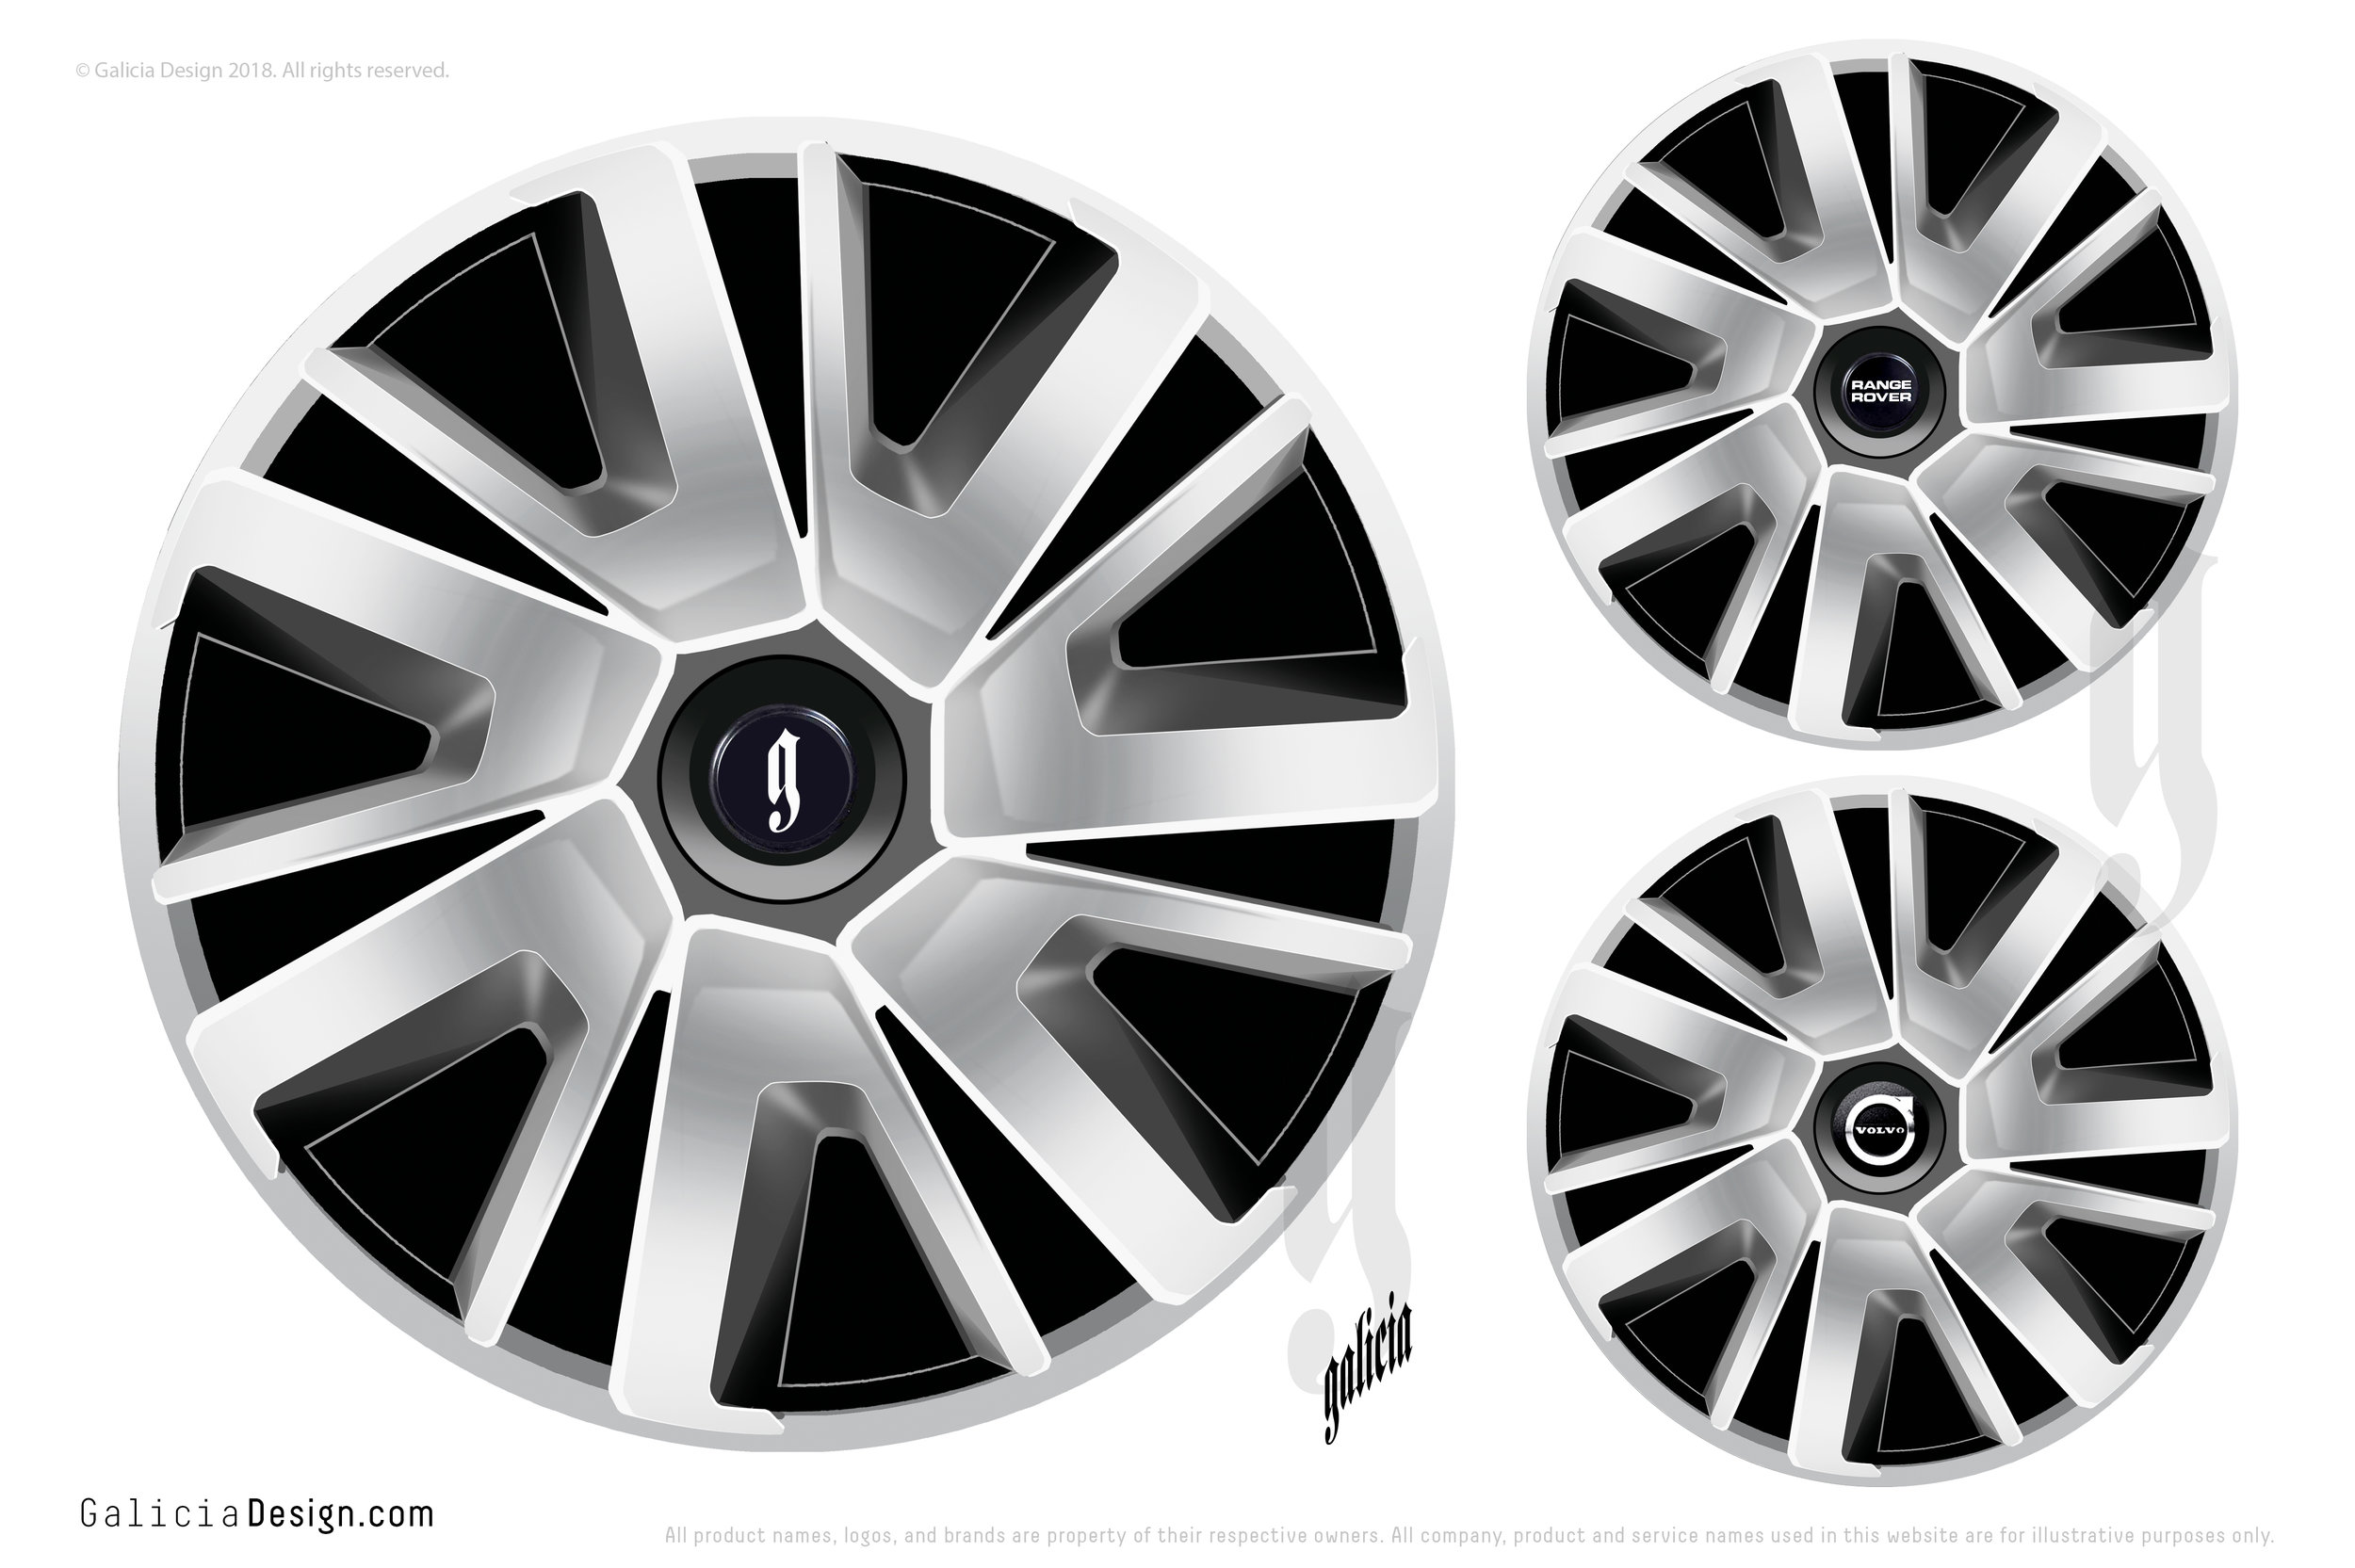 7 spoke %22multi%22 wheel - galiciadesign_com.jpg